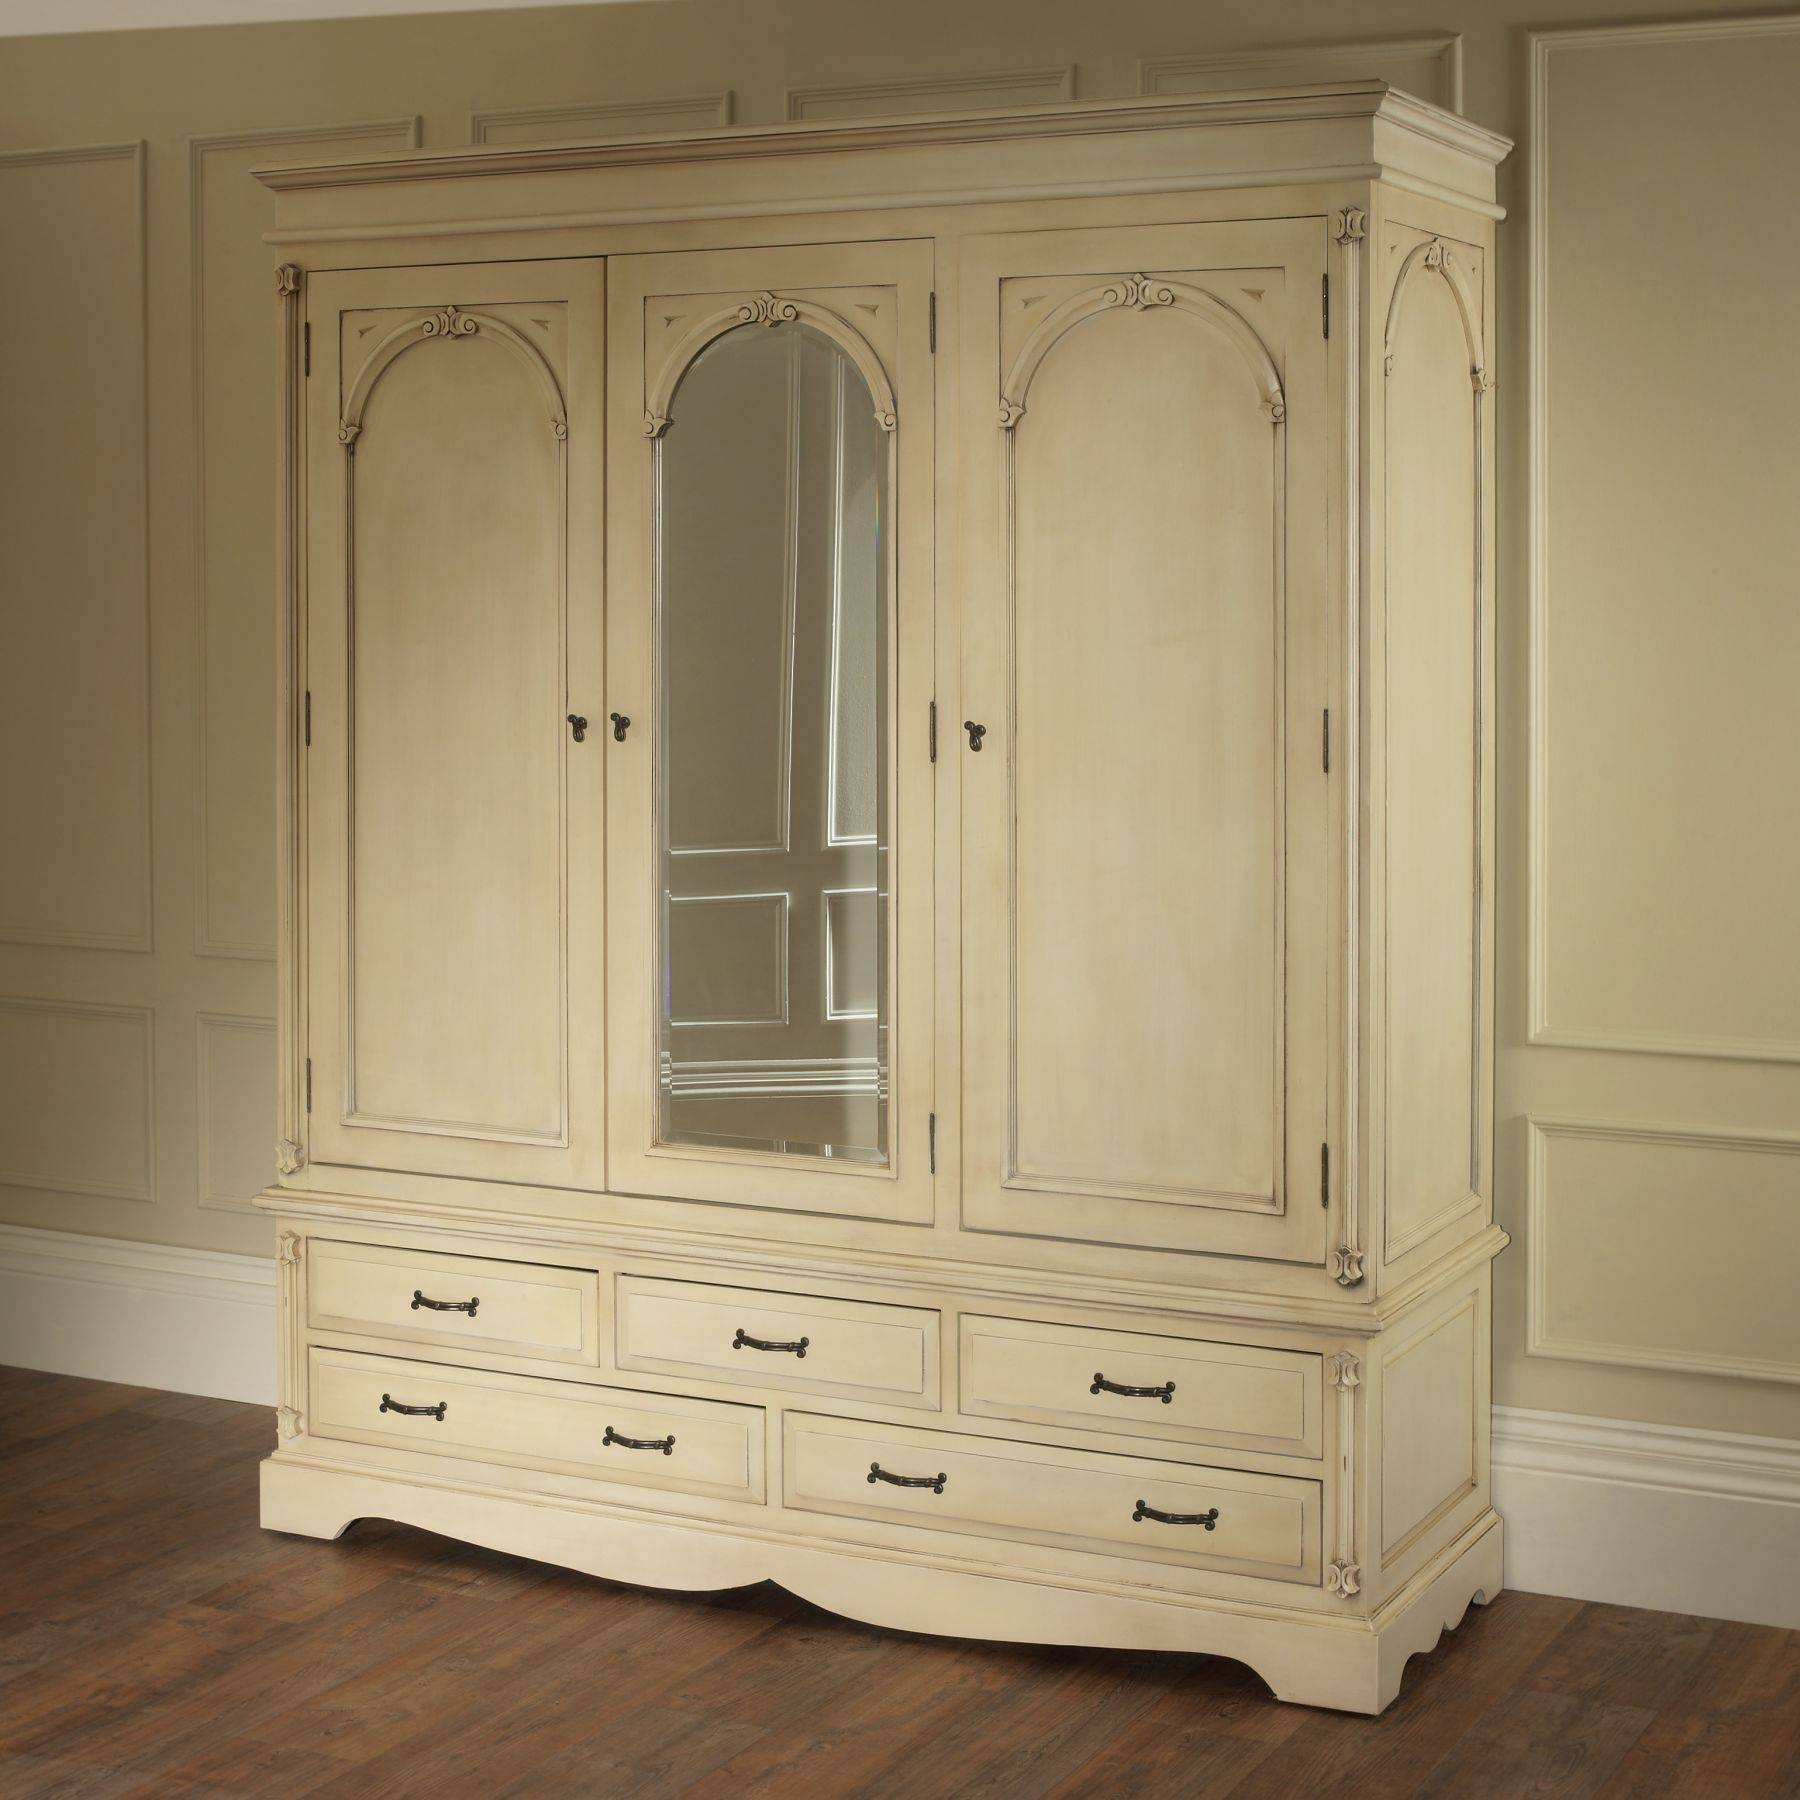 Victorian Antique French Wardrobe Works Wonderful Alongside Our throughout French Antique Wardrobes (Image 15 of 15)